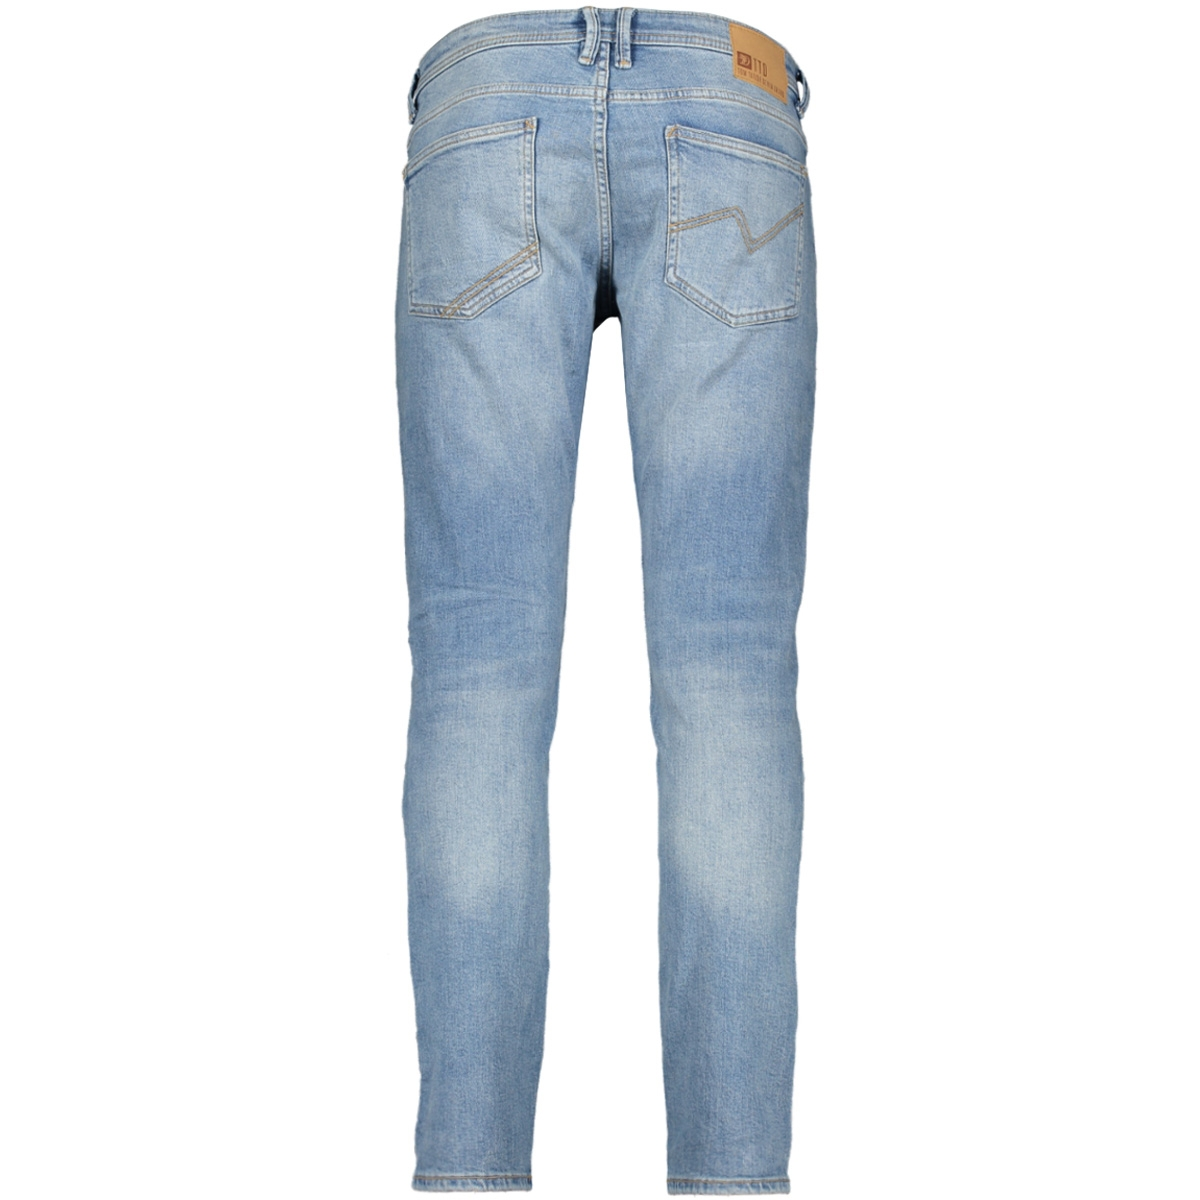 piers slim jeans 1016274xx12 tom tailor jeans 10150